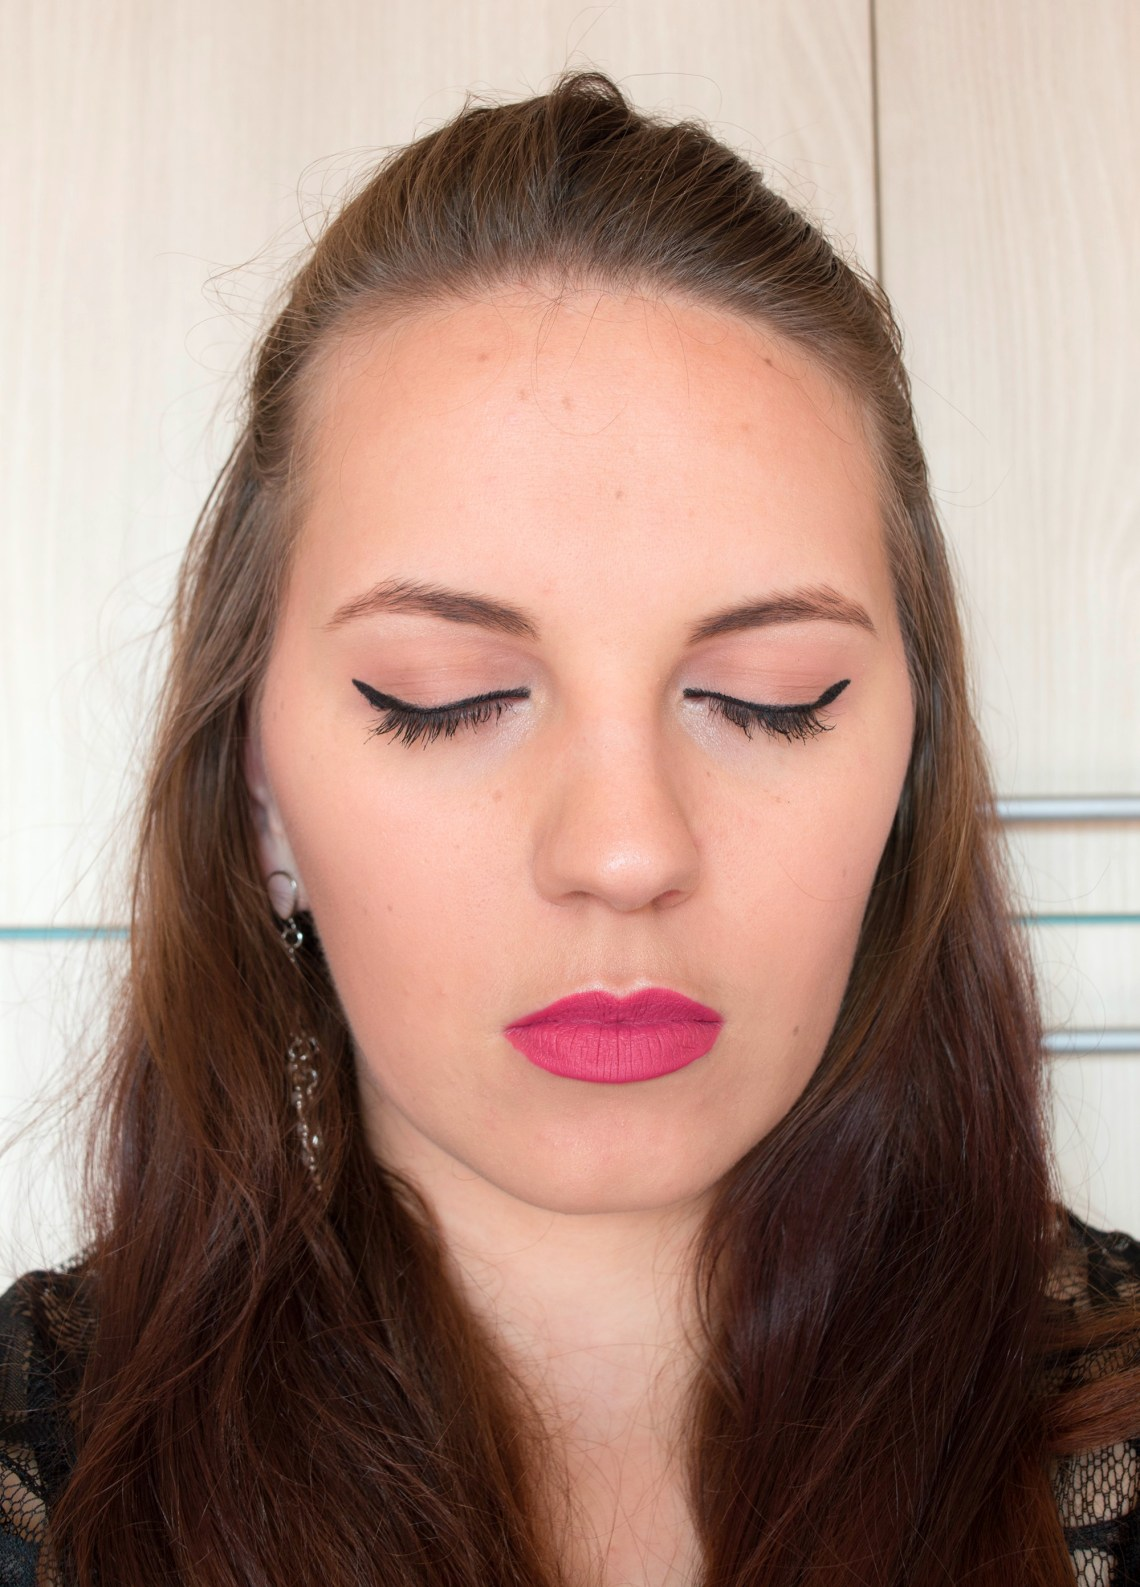 Full Make-up Look with Only 6 Products - Challenge accepted (4)